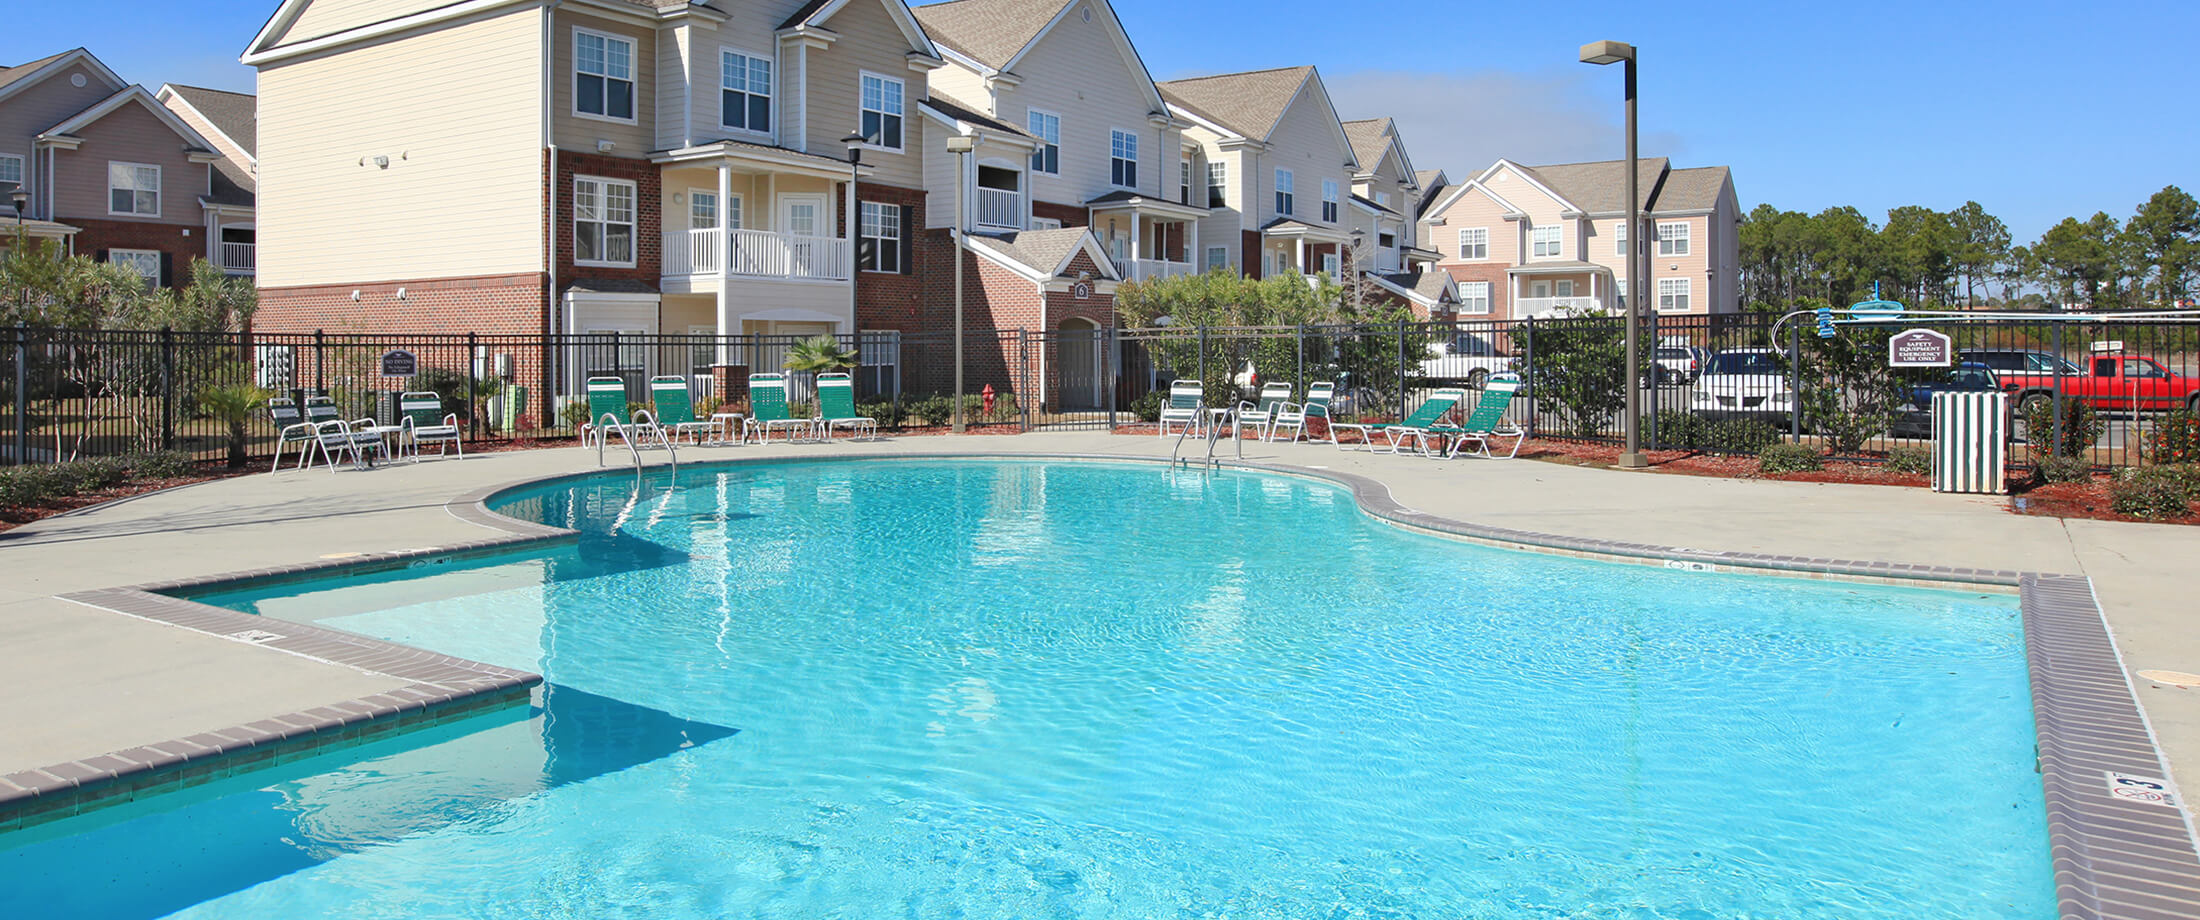 Bridgewater Park Apartments In Biloxi Ms